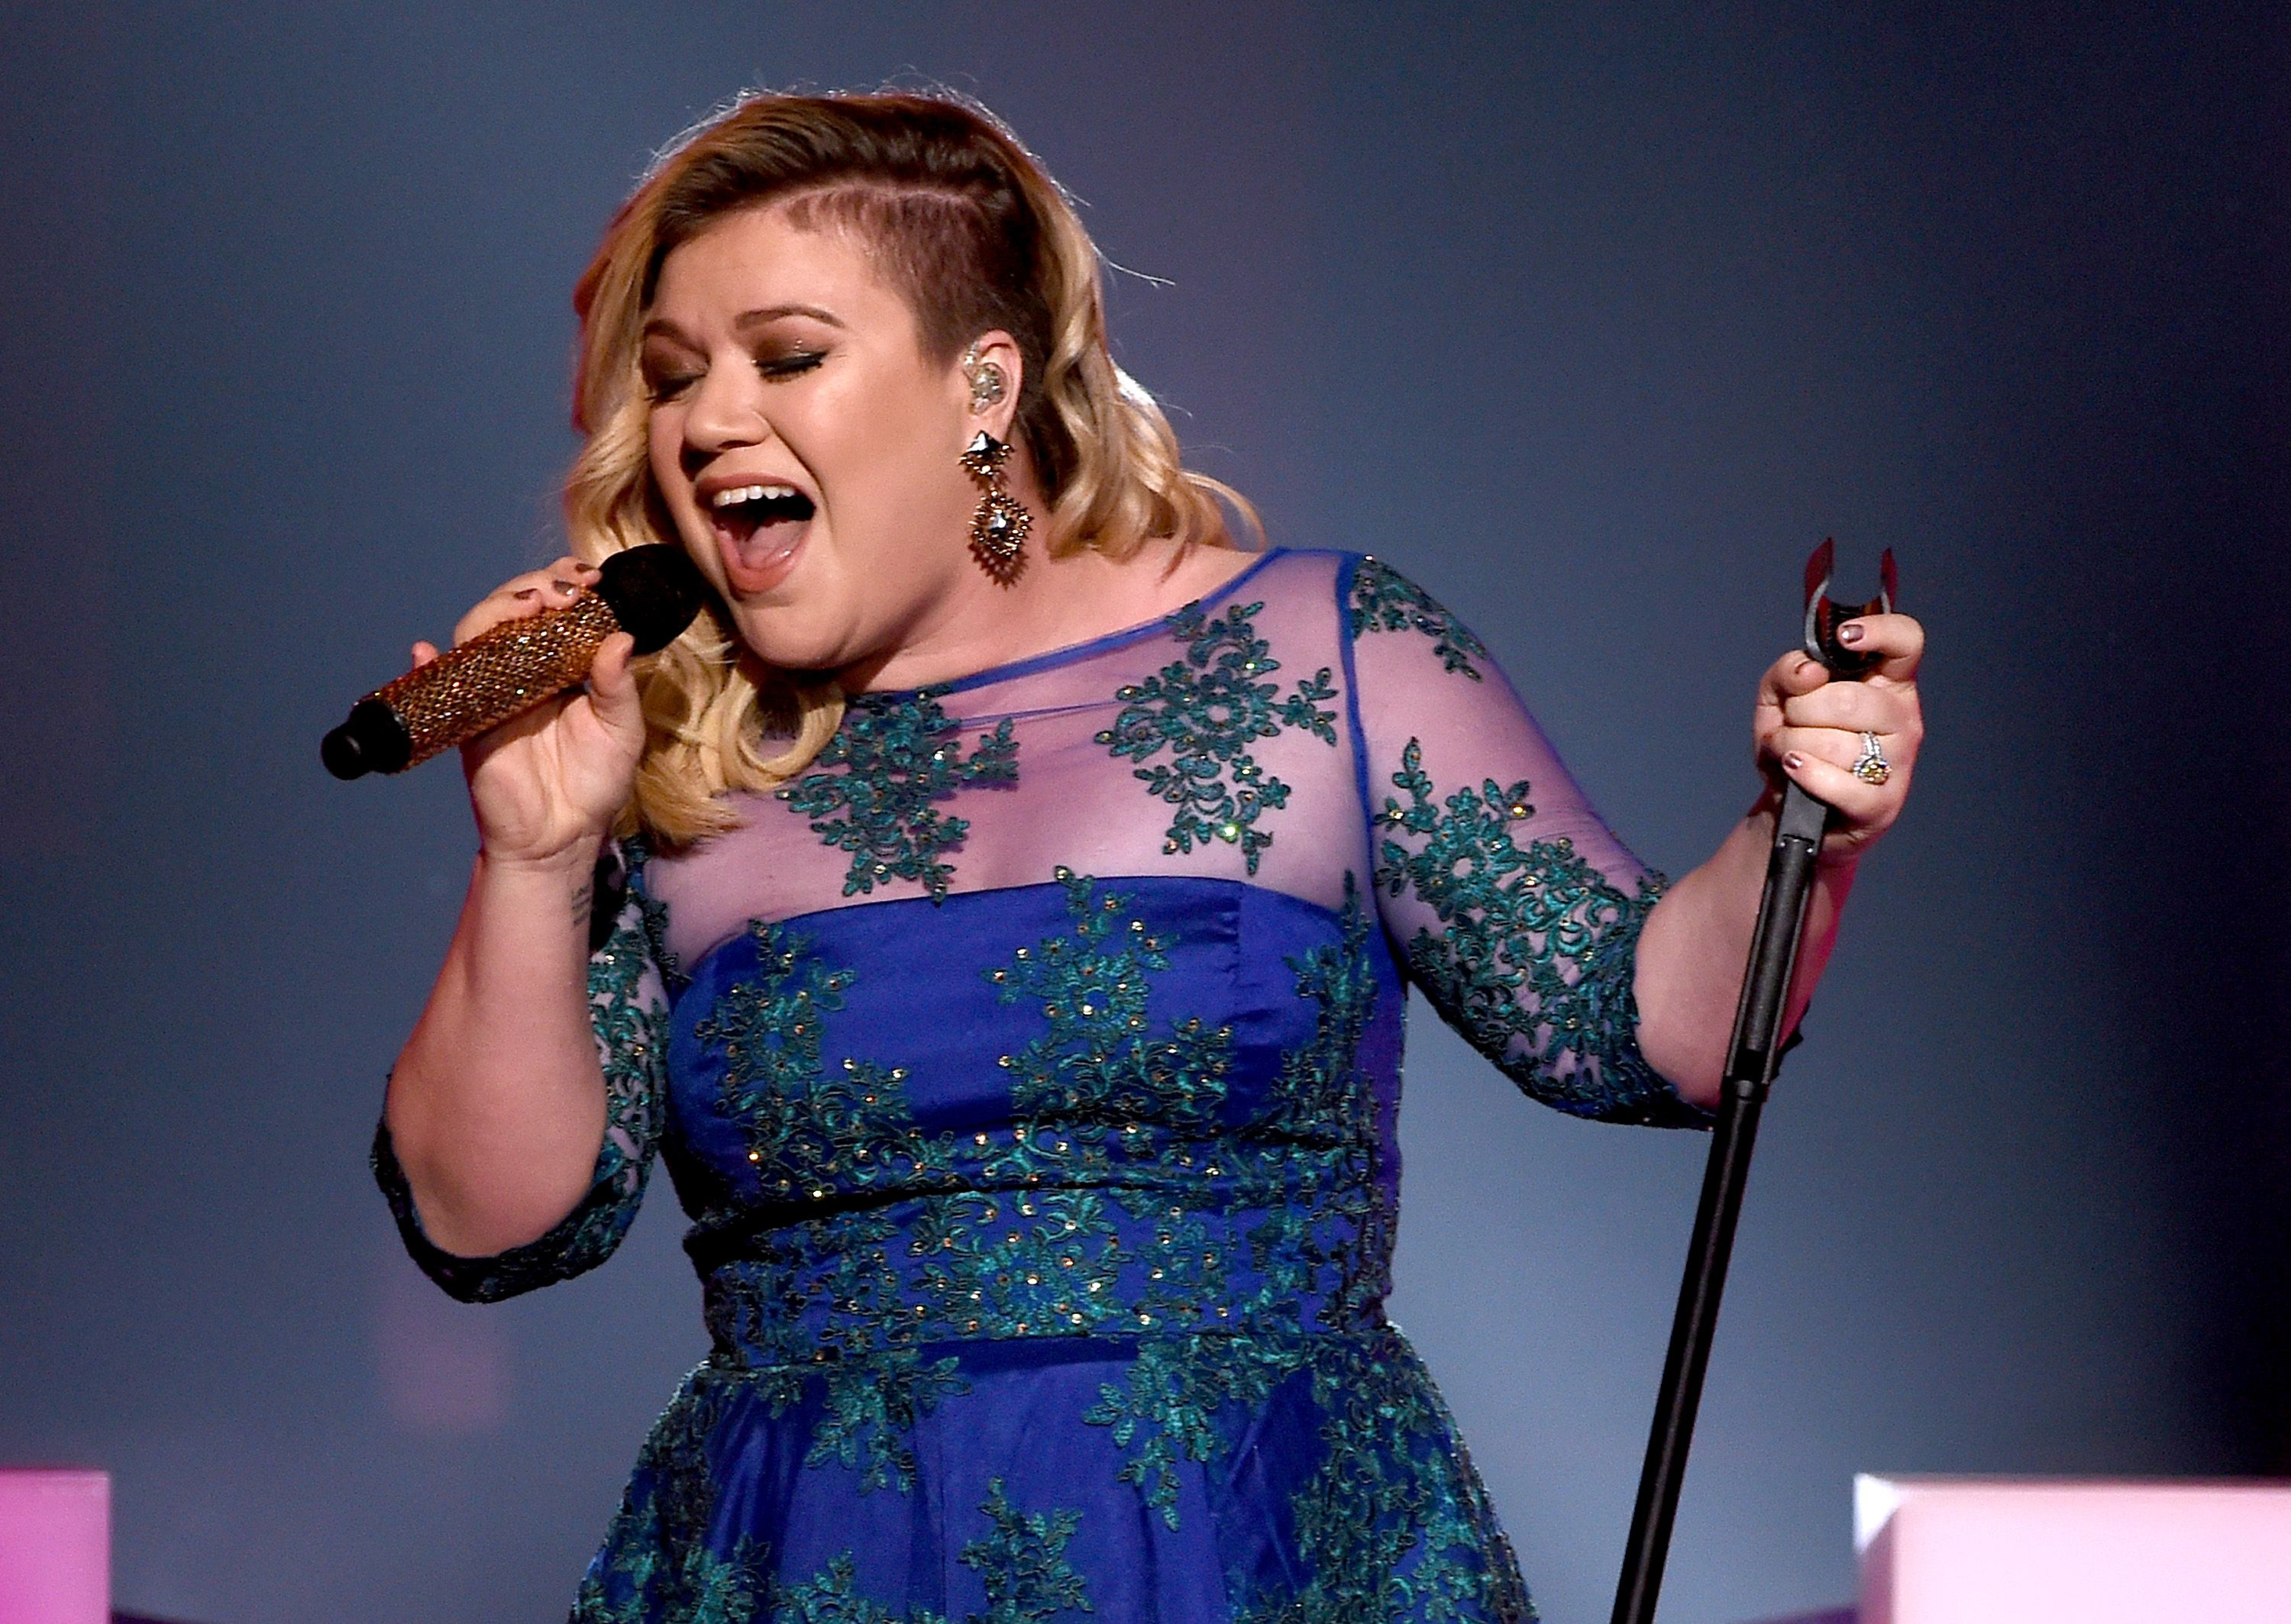 Singer Kelly Clarkson performs 'Heartbeat Song' onstage at the 2015 iHeartRadio Music Awards on The Shrine Auditorium on March 29, 2015 | Photo Getty Images